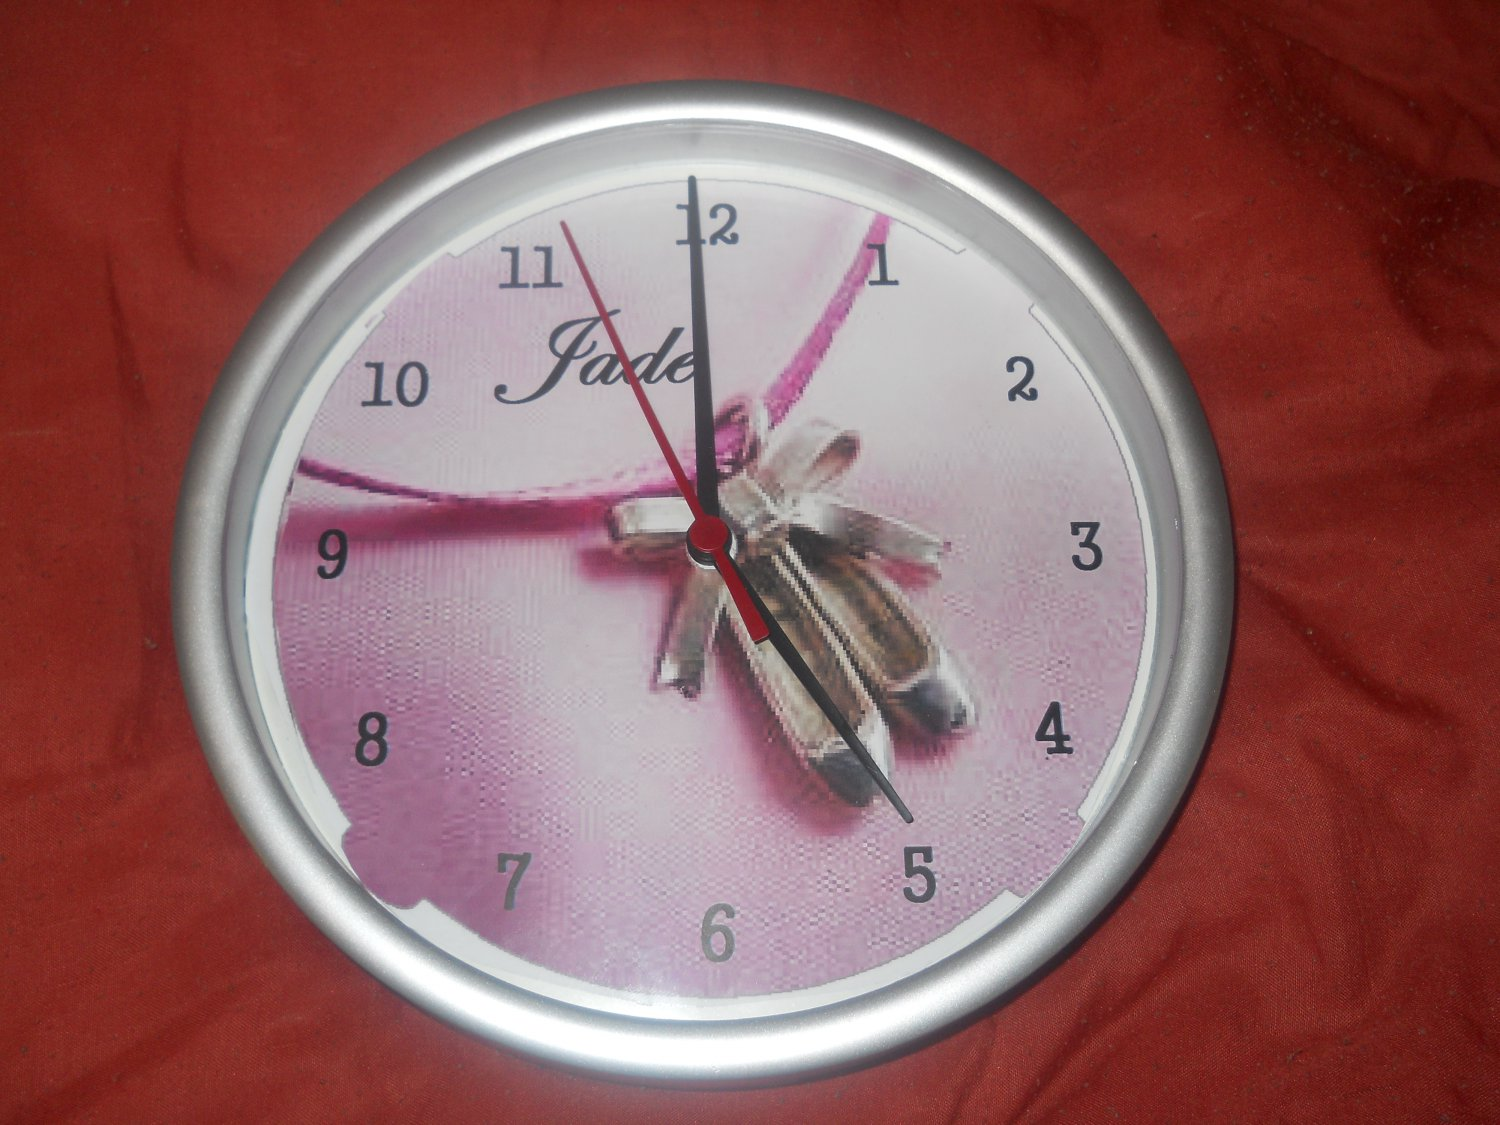 The Ballerina clock